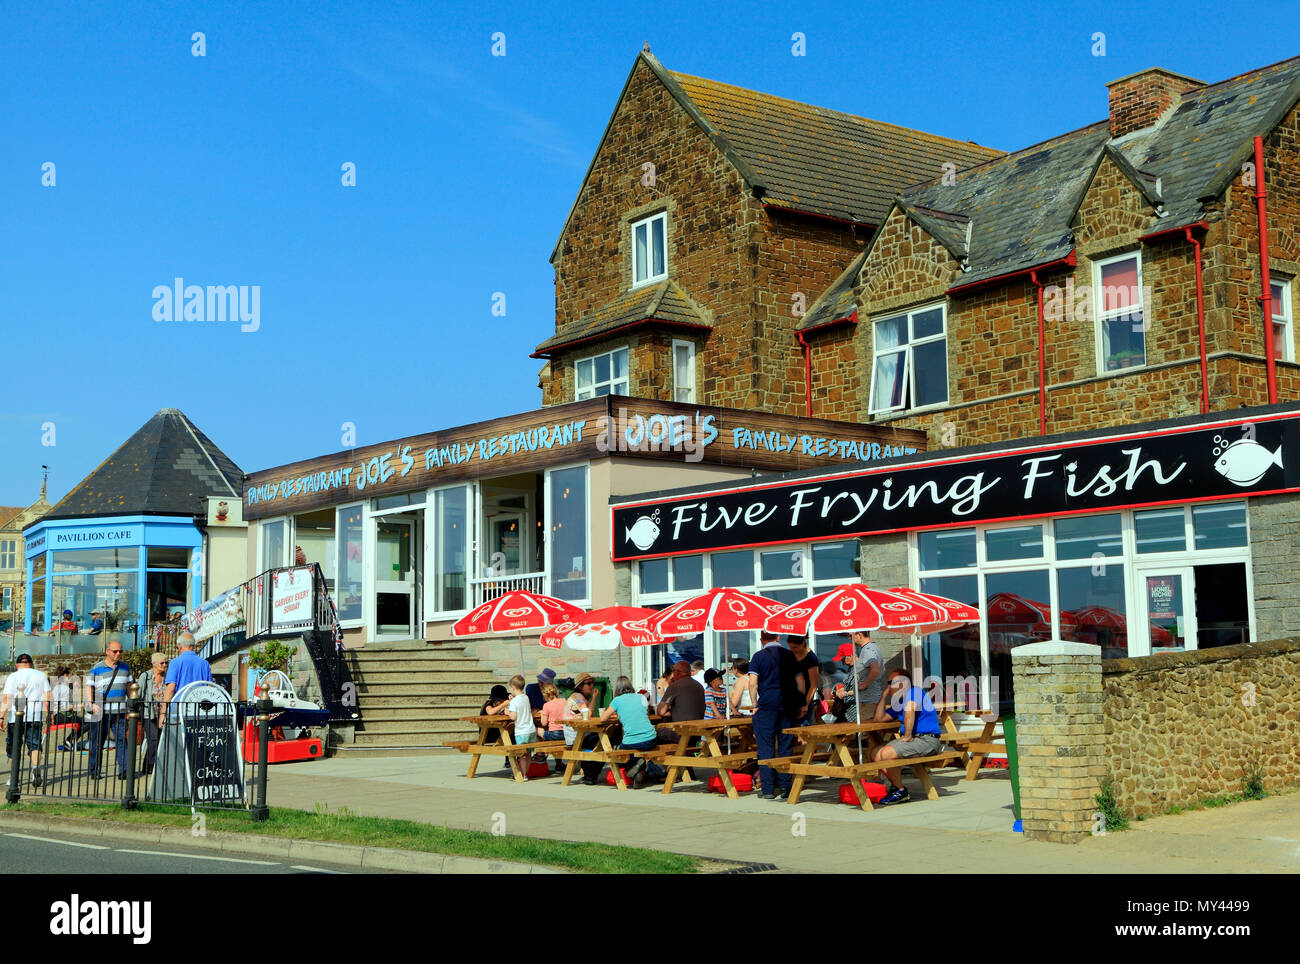 Hunstanton, fish shop cafe, restautants, holidaymakers, seaside resort, Five Frying Fish cafe, Norfolk, UK - Stock Image